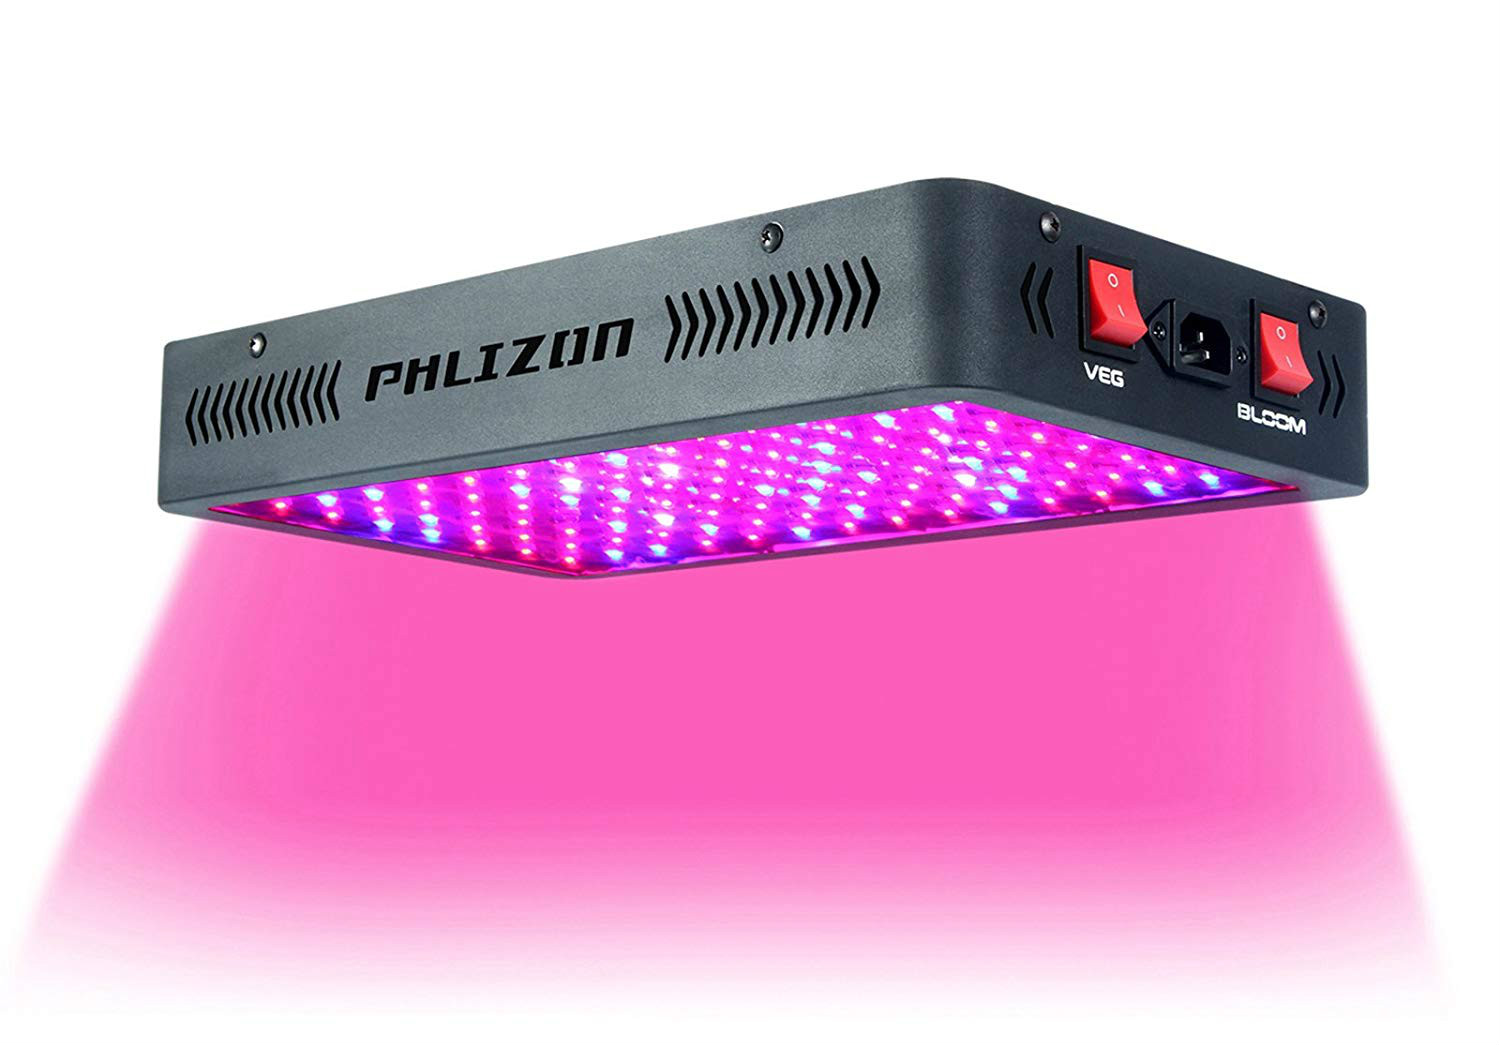 My Review of the PHILZON 1200 WATT LED GROWLIGHT, BY the BLURPLE KING OF LEDS